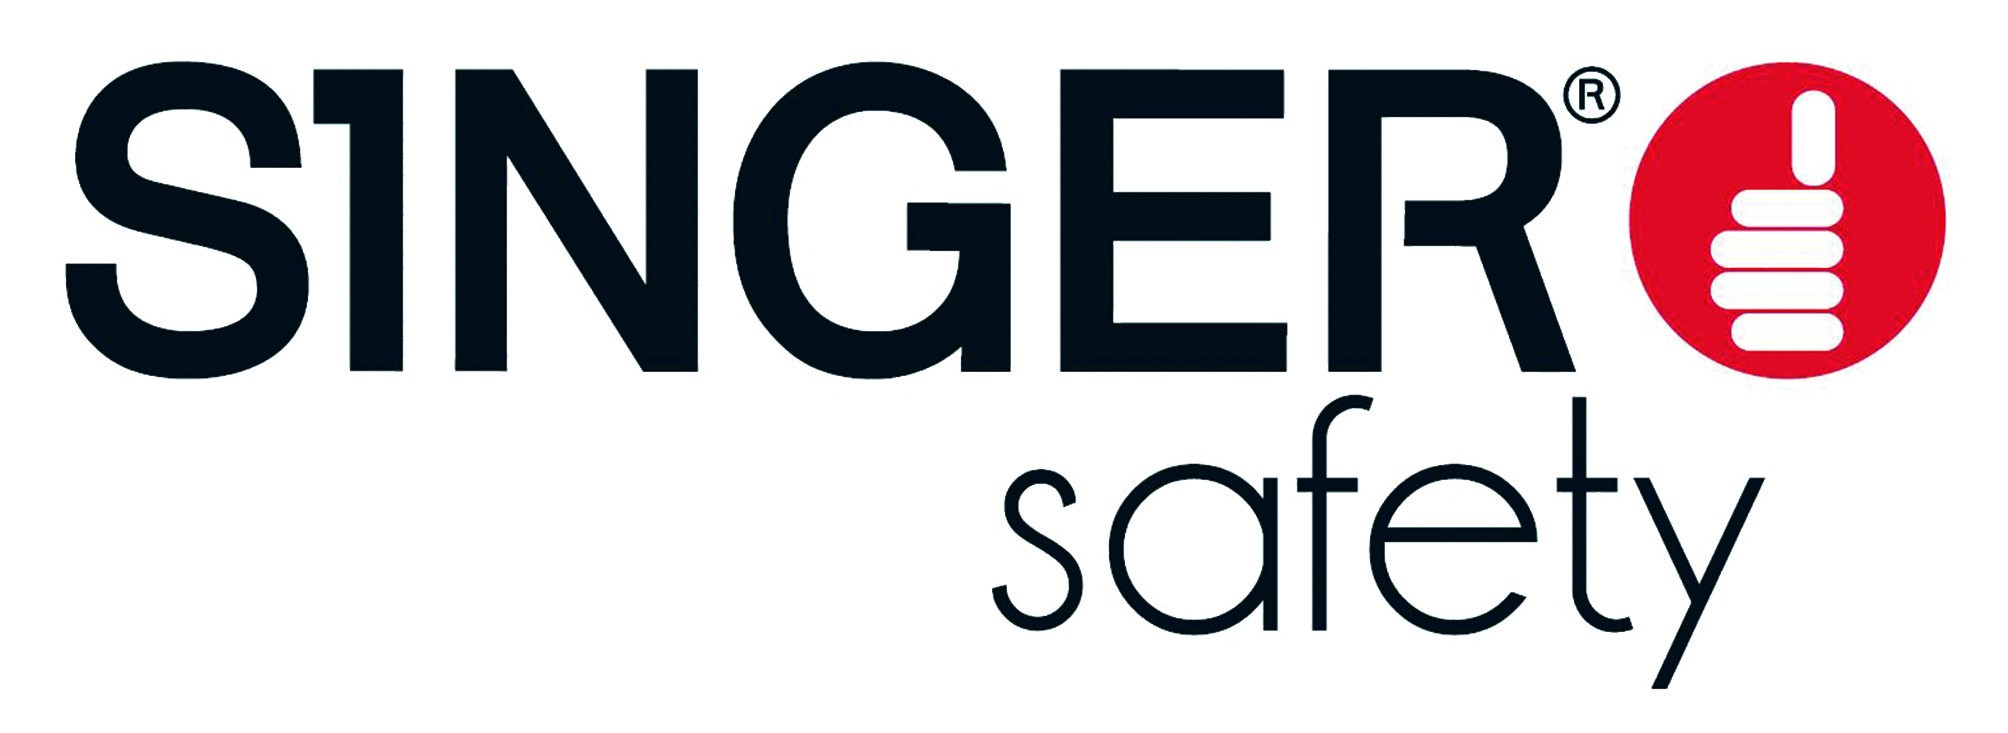 SINGER SAFETY